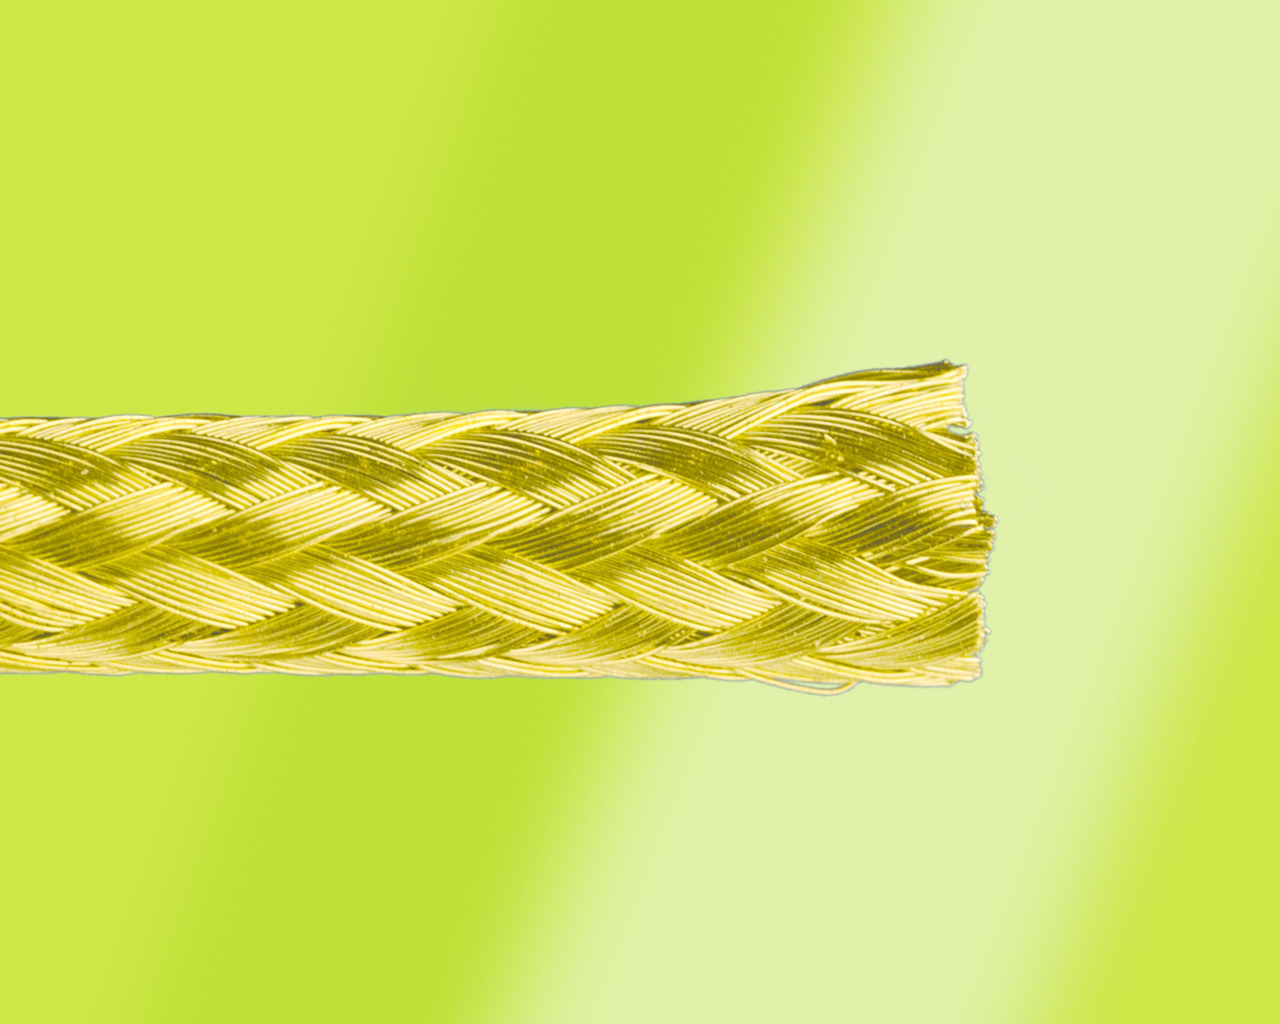 Alpha Wire Introduces Brass Braid Sleeving to the FIT Wire Management Family